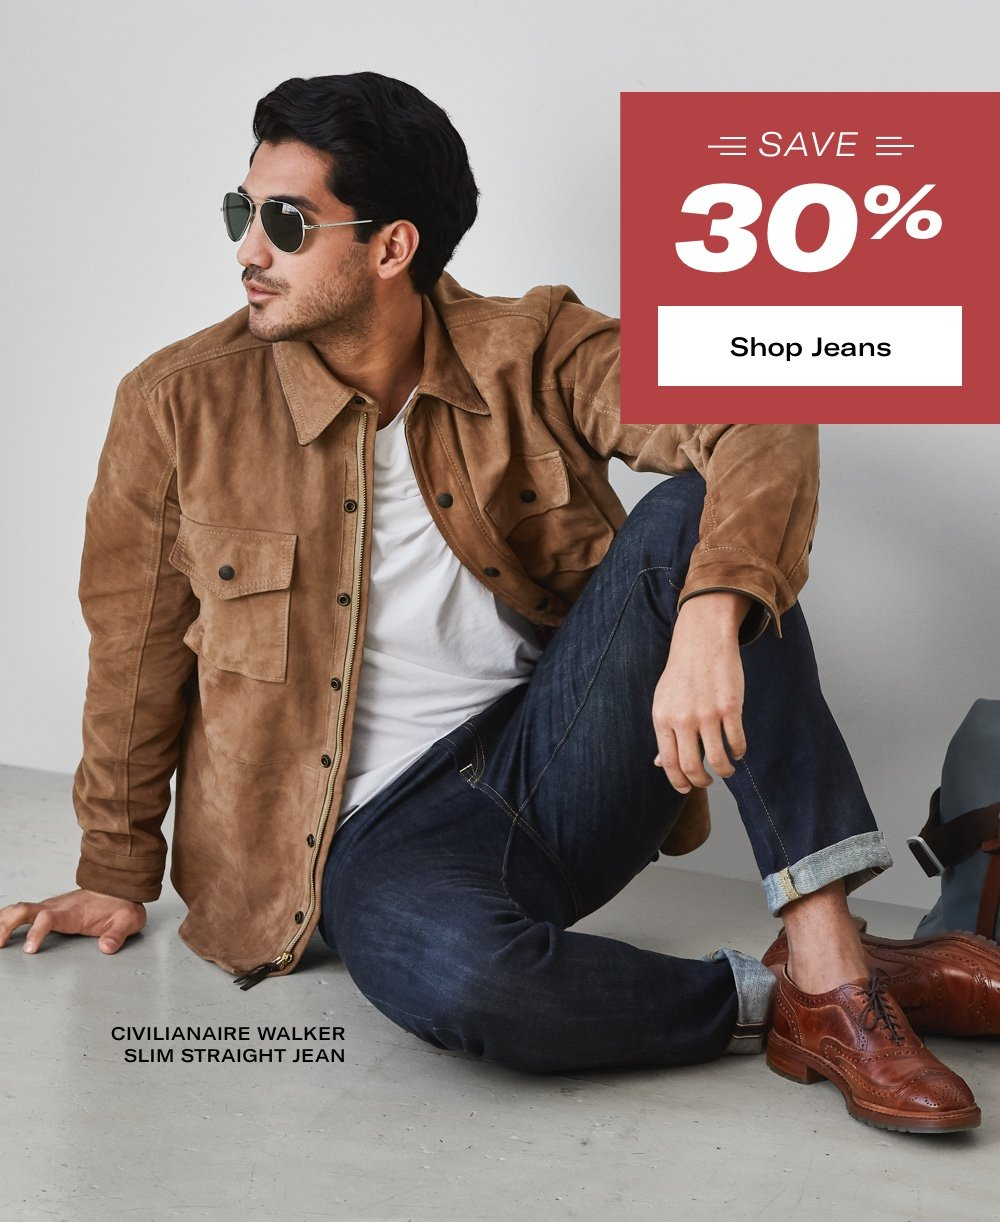 Save 30% on Jeans